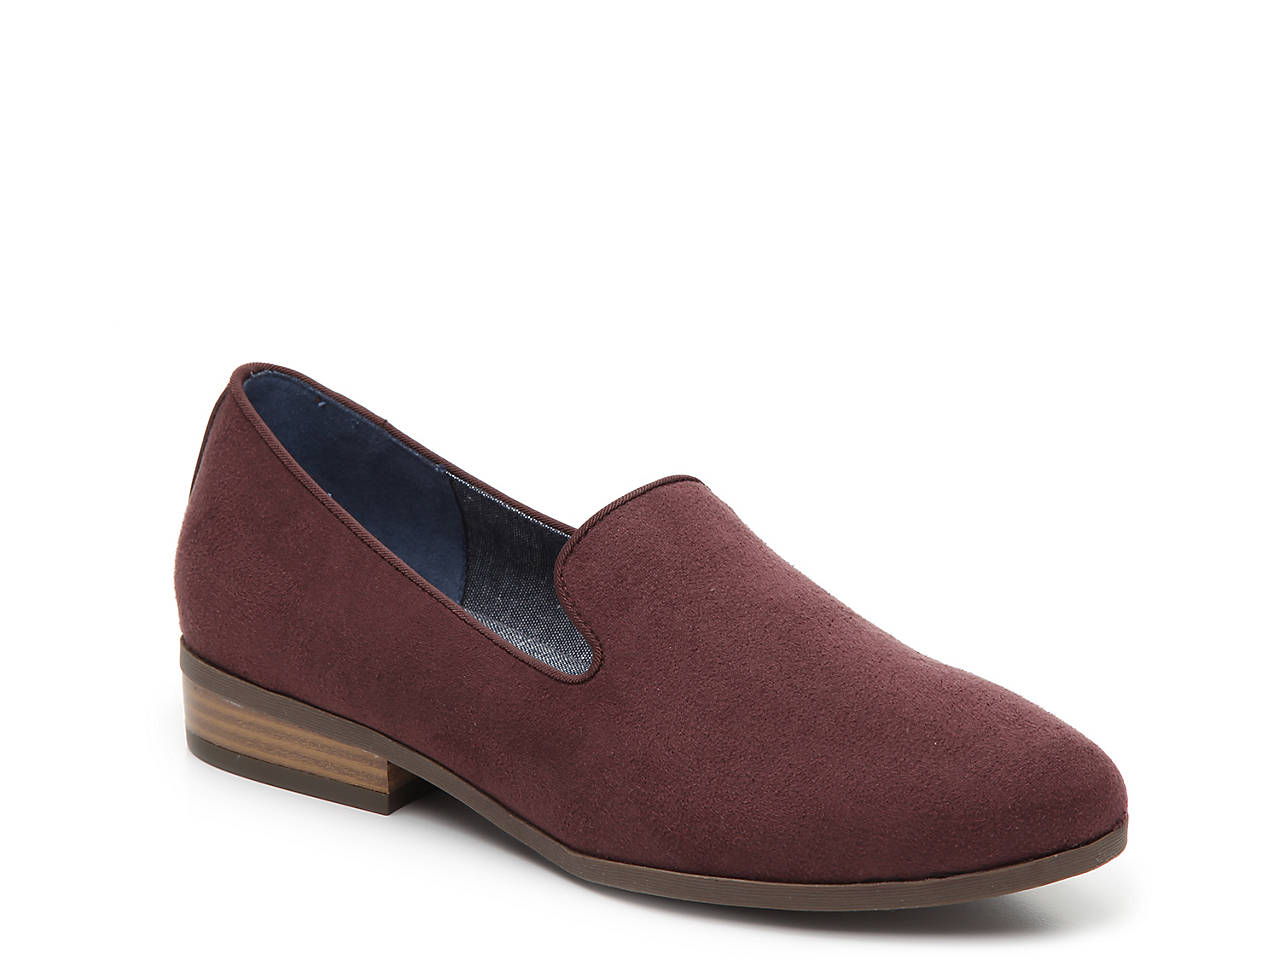 ad04beb75395 Dr. Scholl s Emperor Loafer Women s Shoes